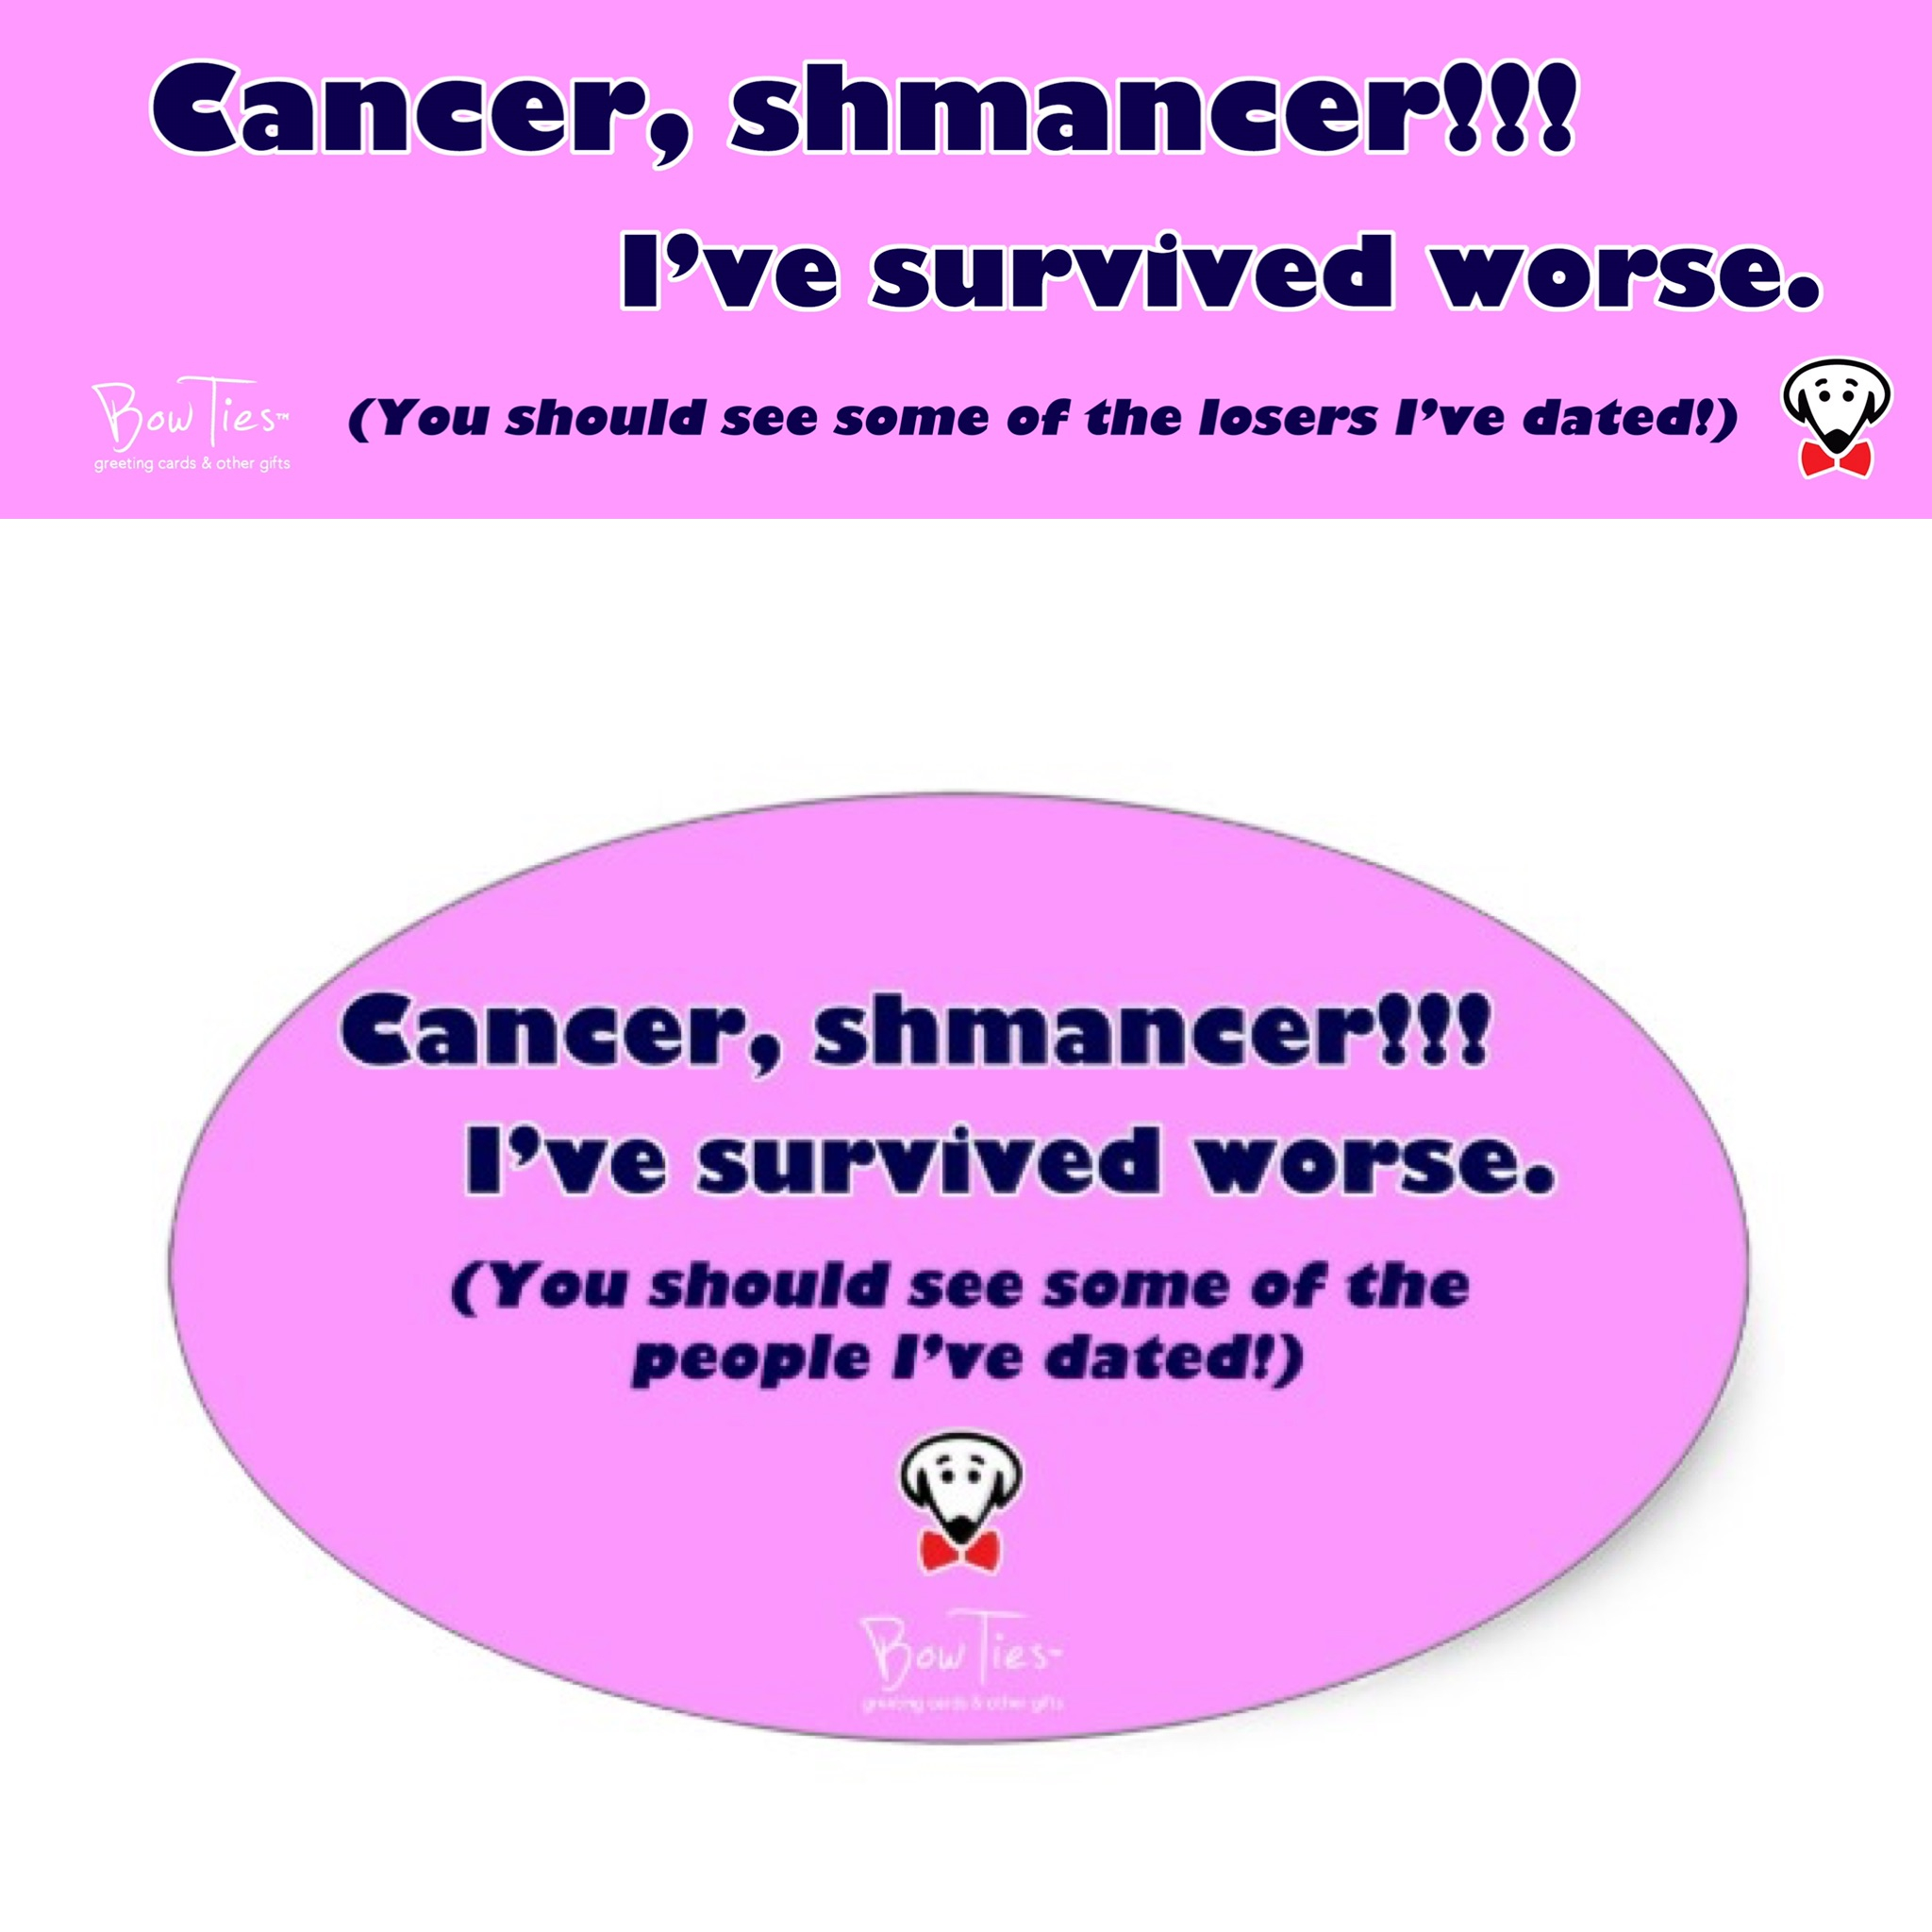 Cancer, shmancer!!! I've survived worse. – sticker